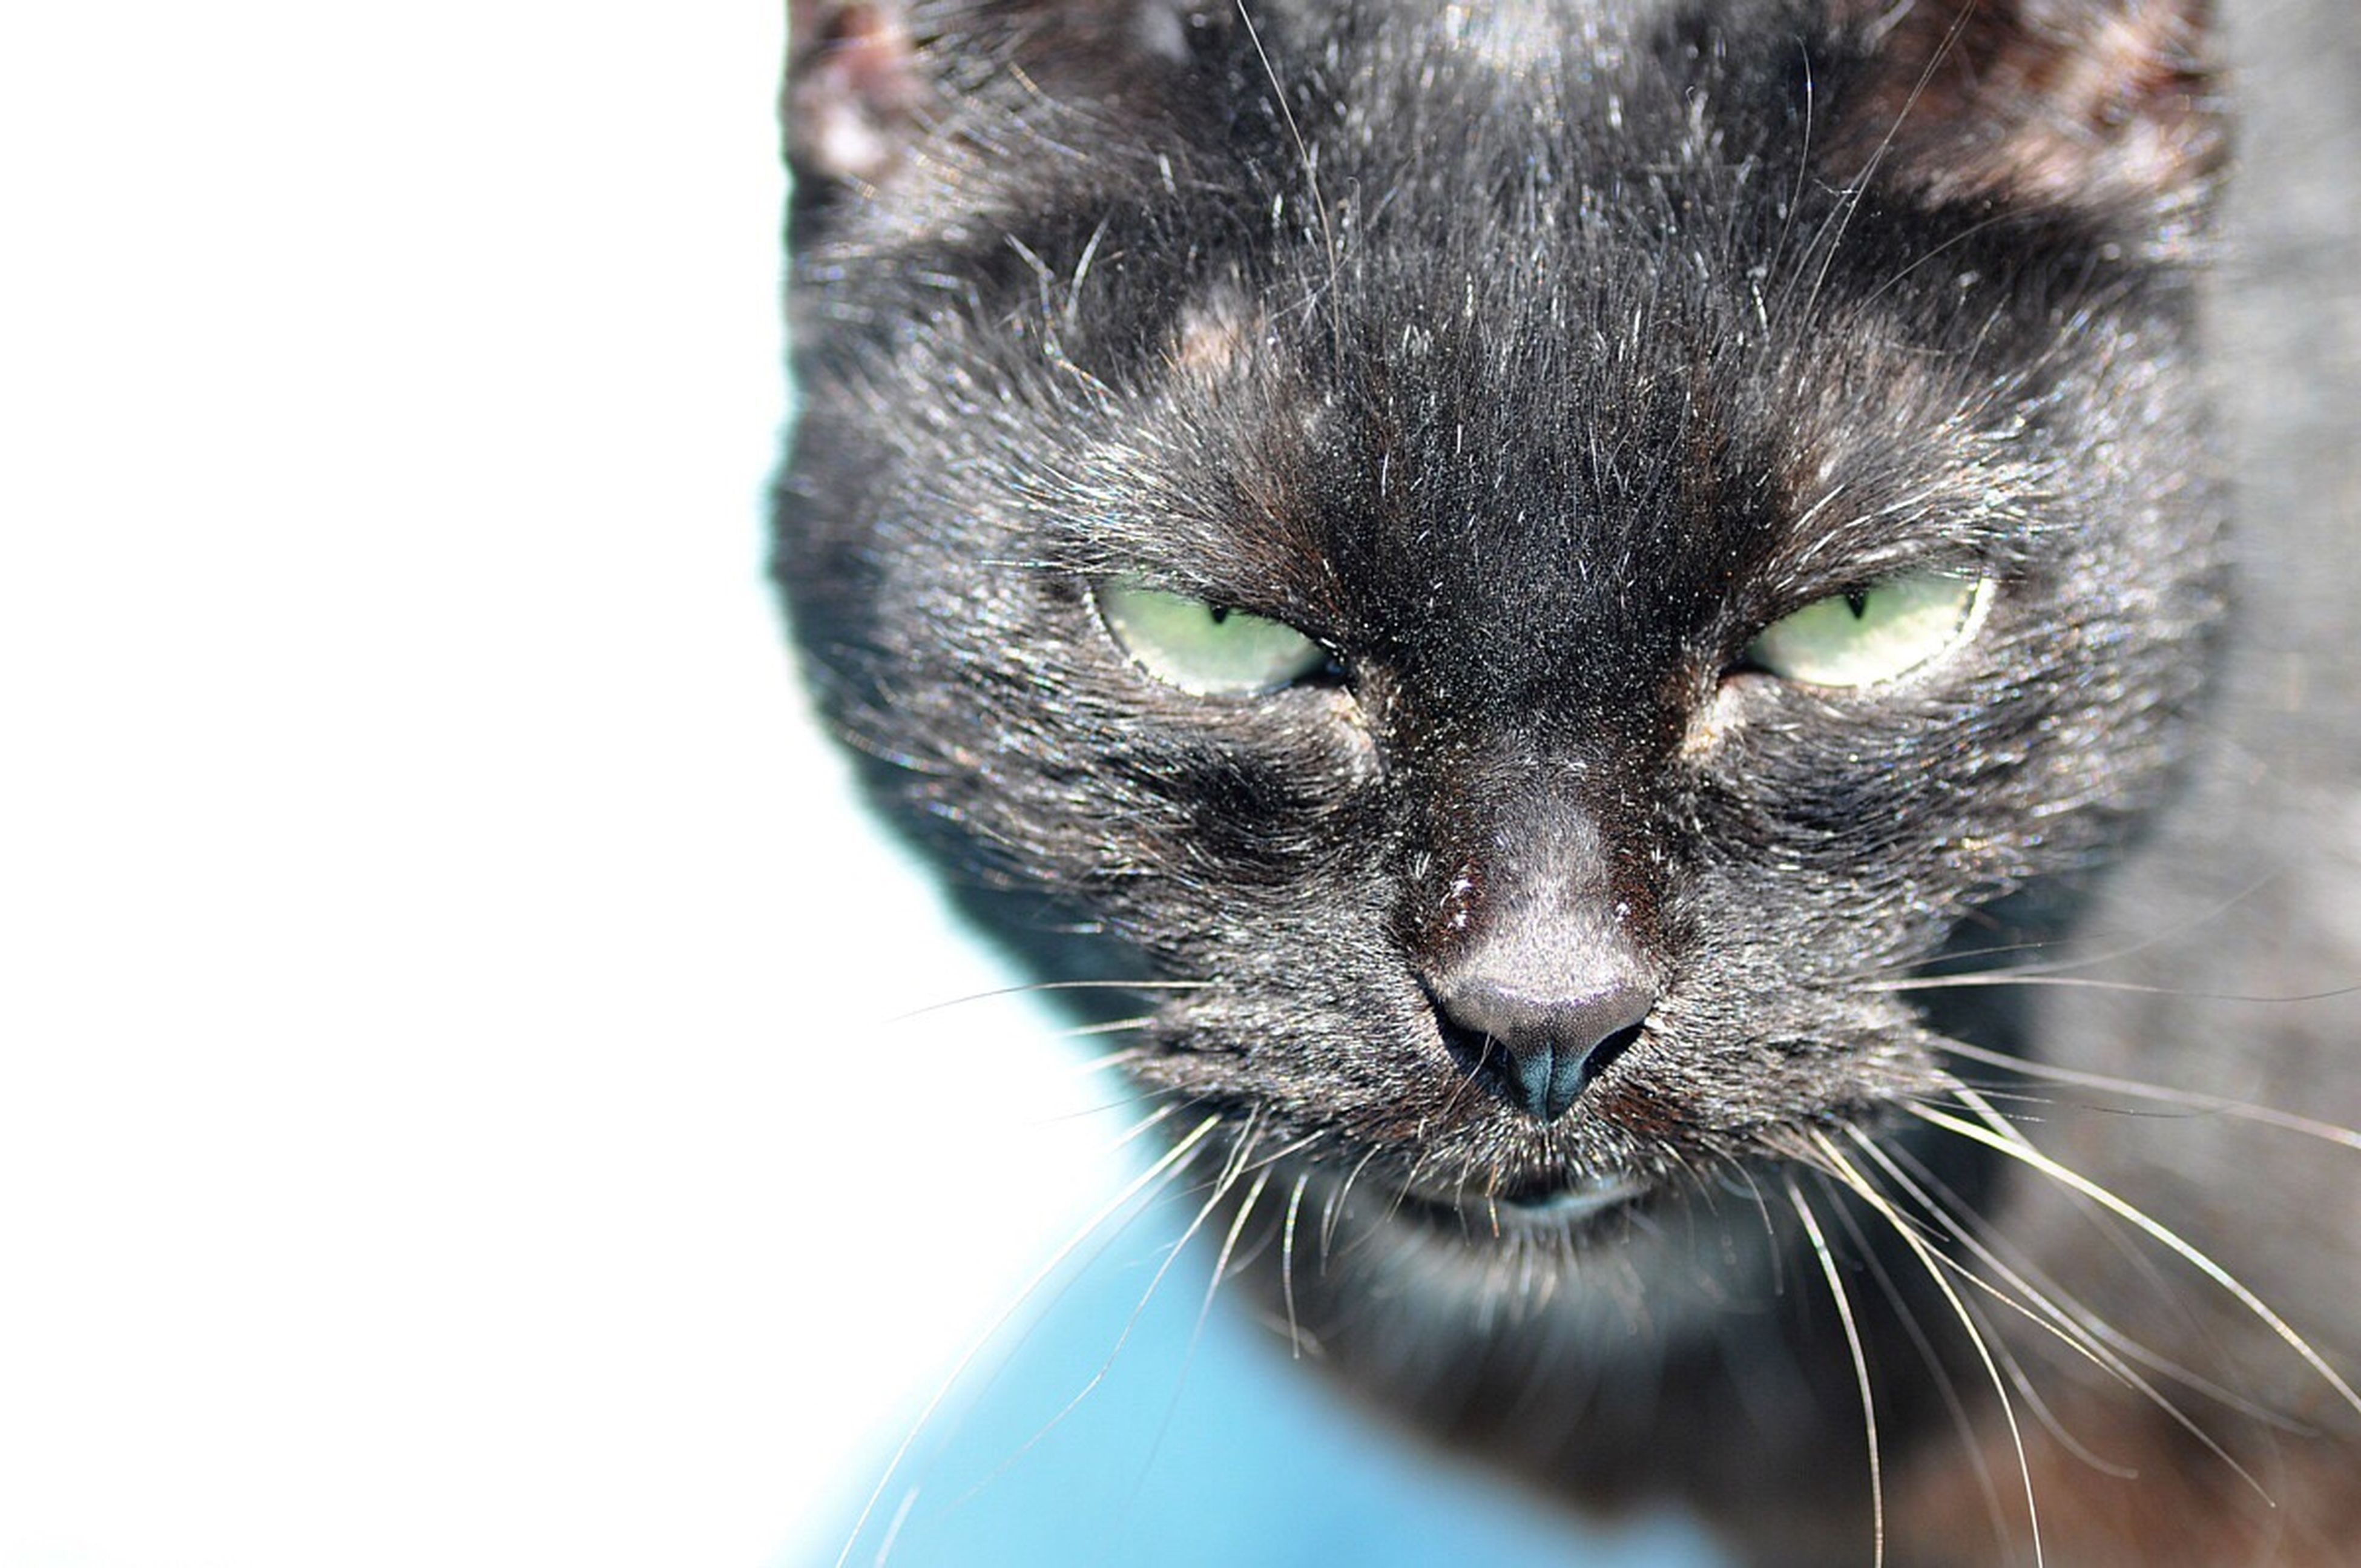 pets, one animal, domestic animals, animal themes, domestic cat, close-up, animal head, cat, whisker, mammal, feline, studio shot, white background, snout, looking at camera, zoology, focus on foreground, animal, animal nose, animal eye, no people, animal hair